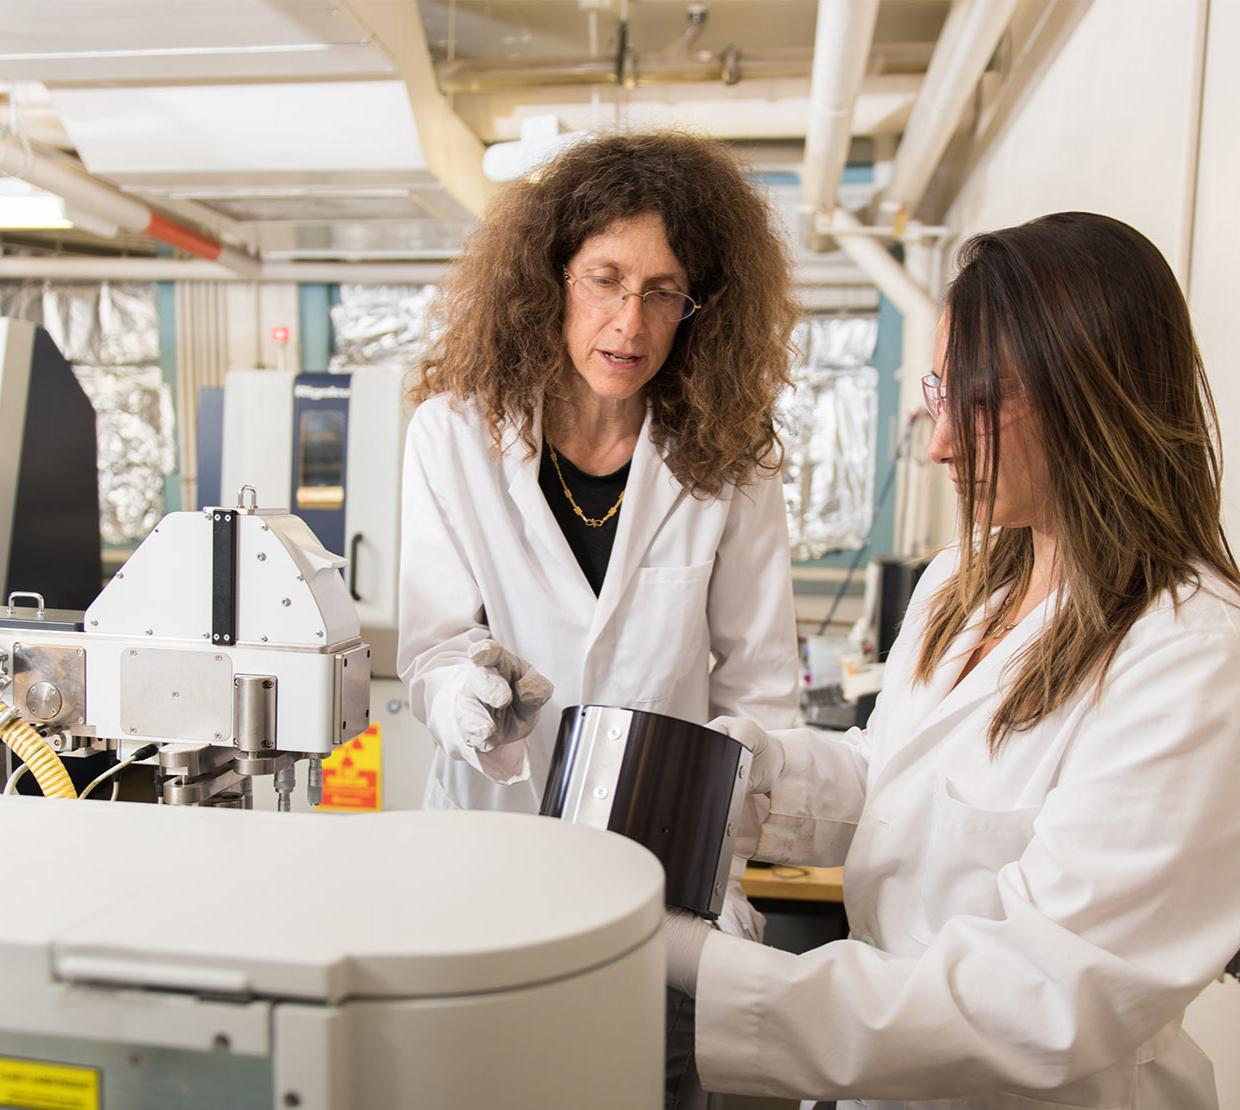 Dr. Nyman in her lab with a student.